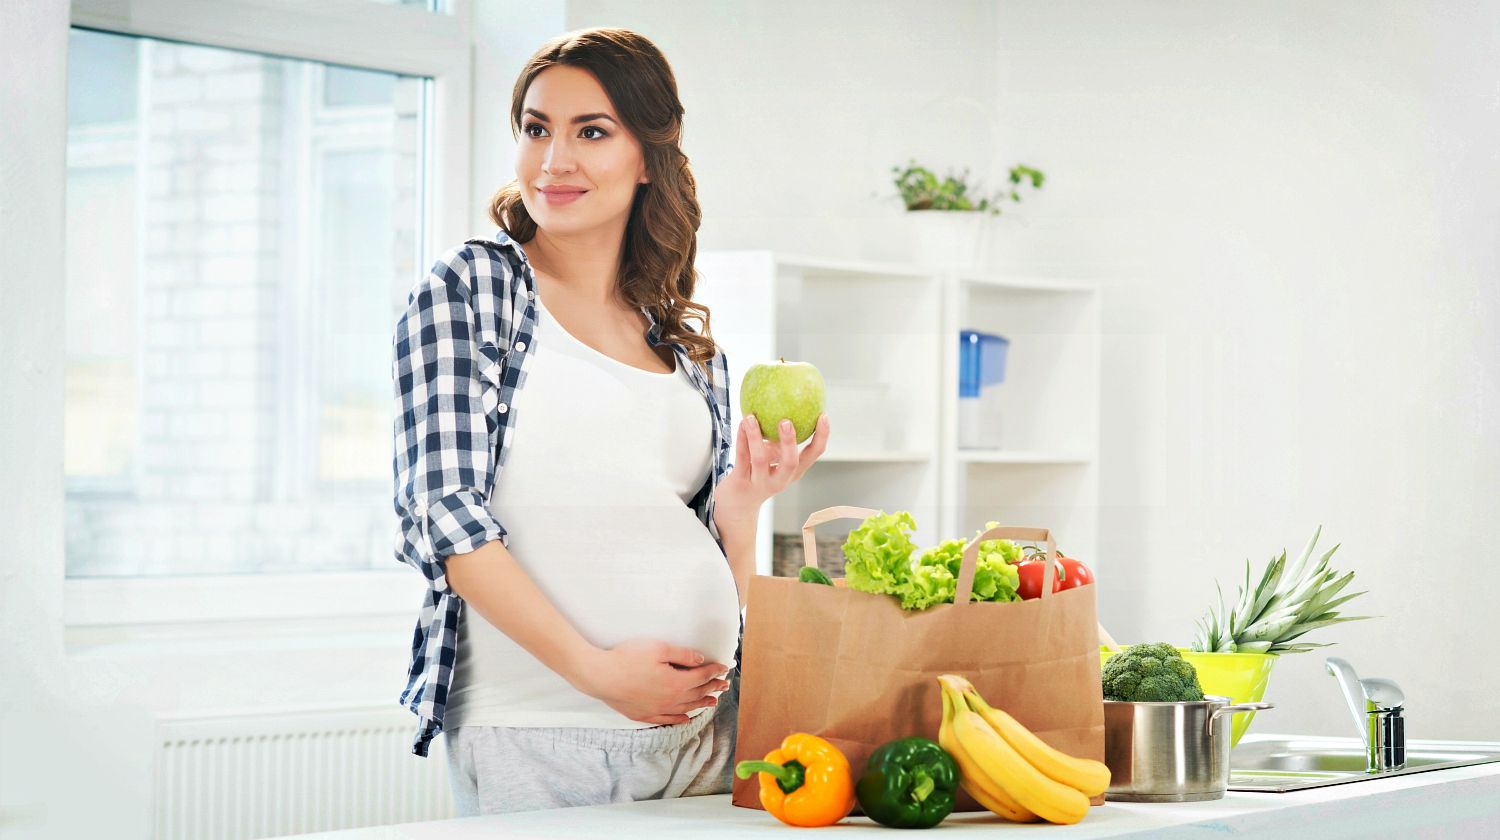 Feature | Pregnant woman in kitchen holding green apple and smiling | Pregnancy Diet and Nutrition FAQs